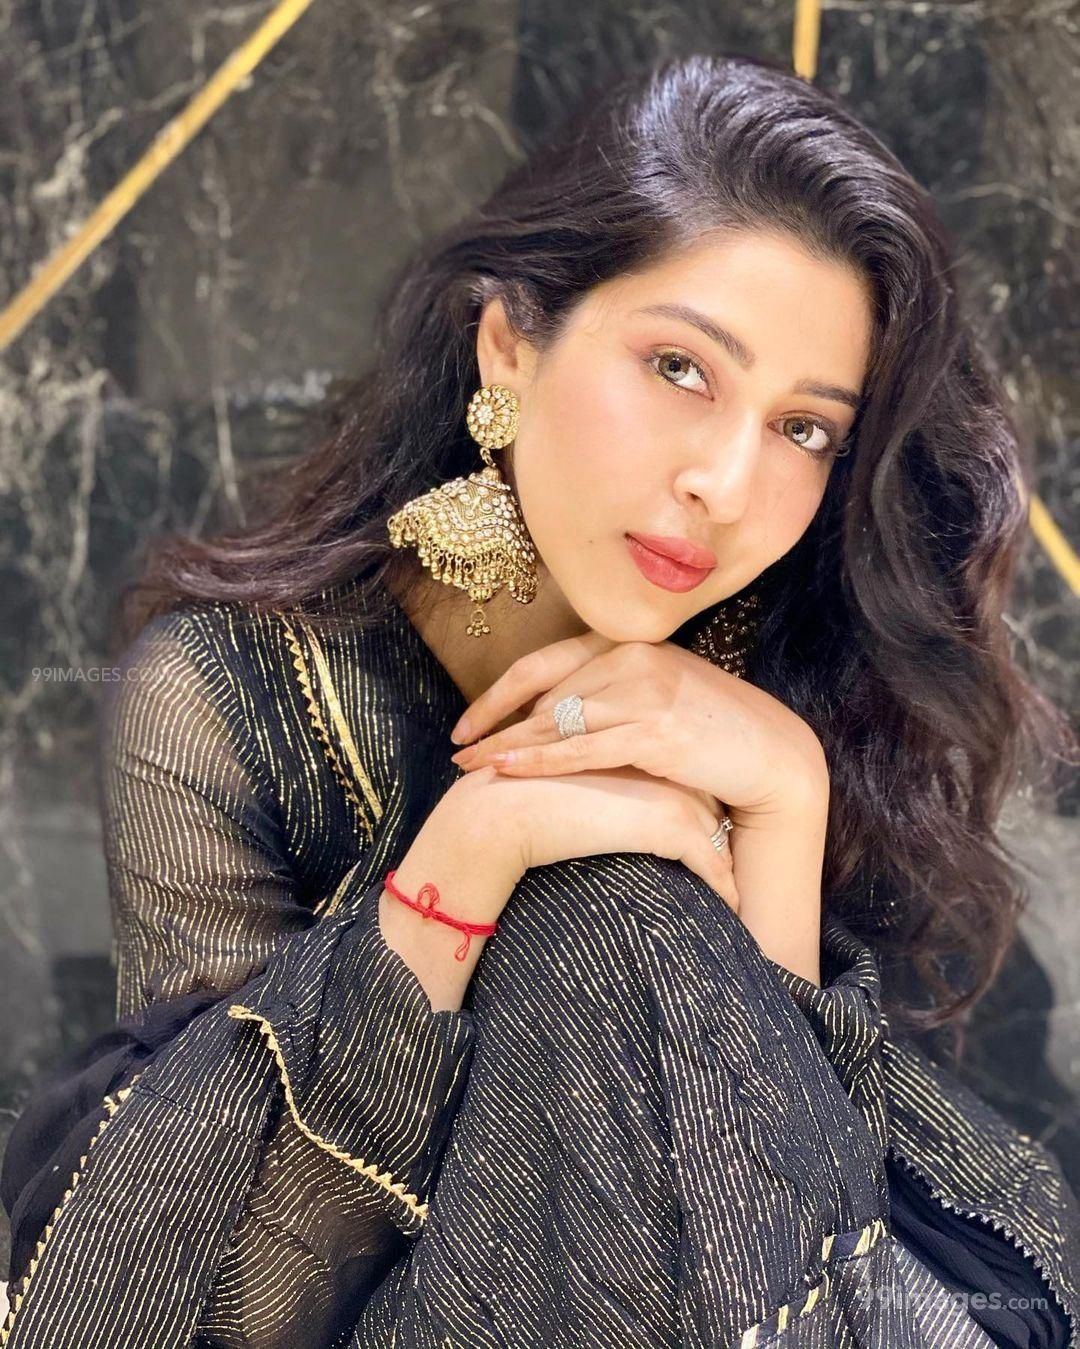 Sonarika Bhadoria Beautiful HD Photoshoot Stills & Mobile Wallpapers HD (1080p) (632936) - Sonarika Bhadoria